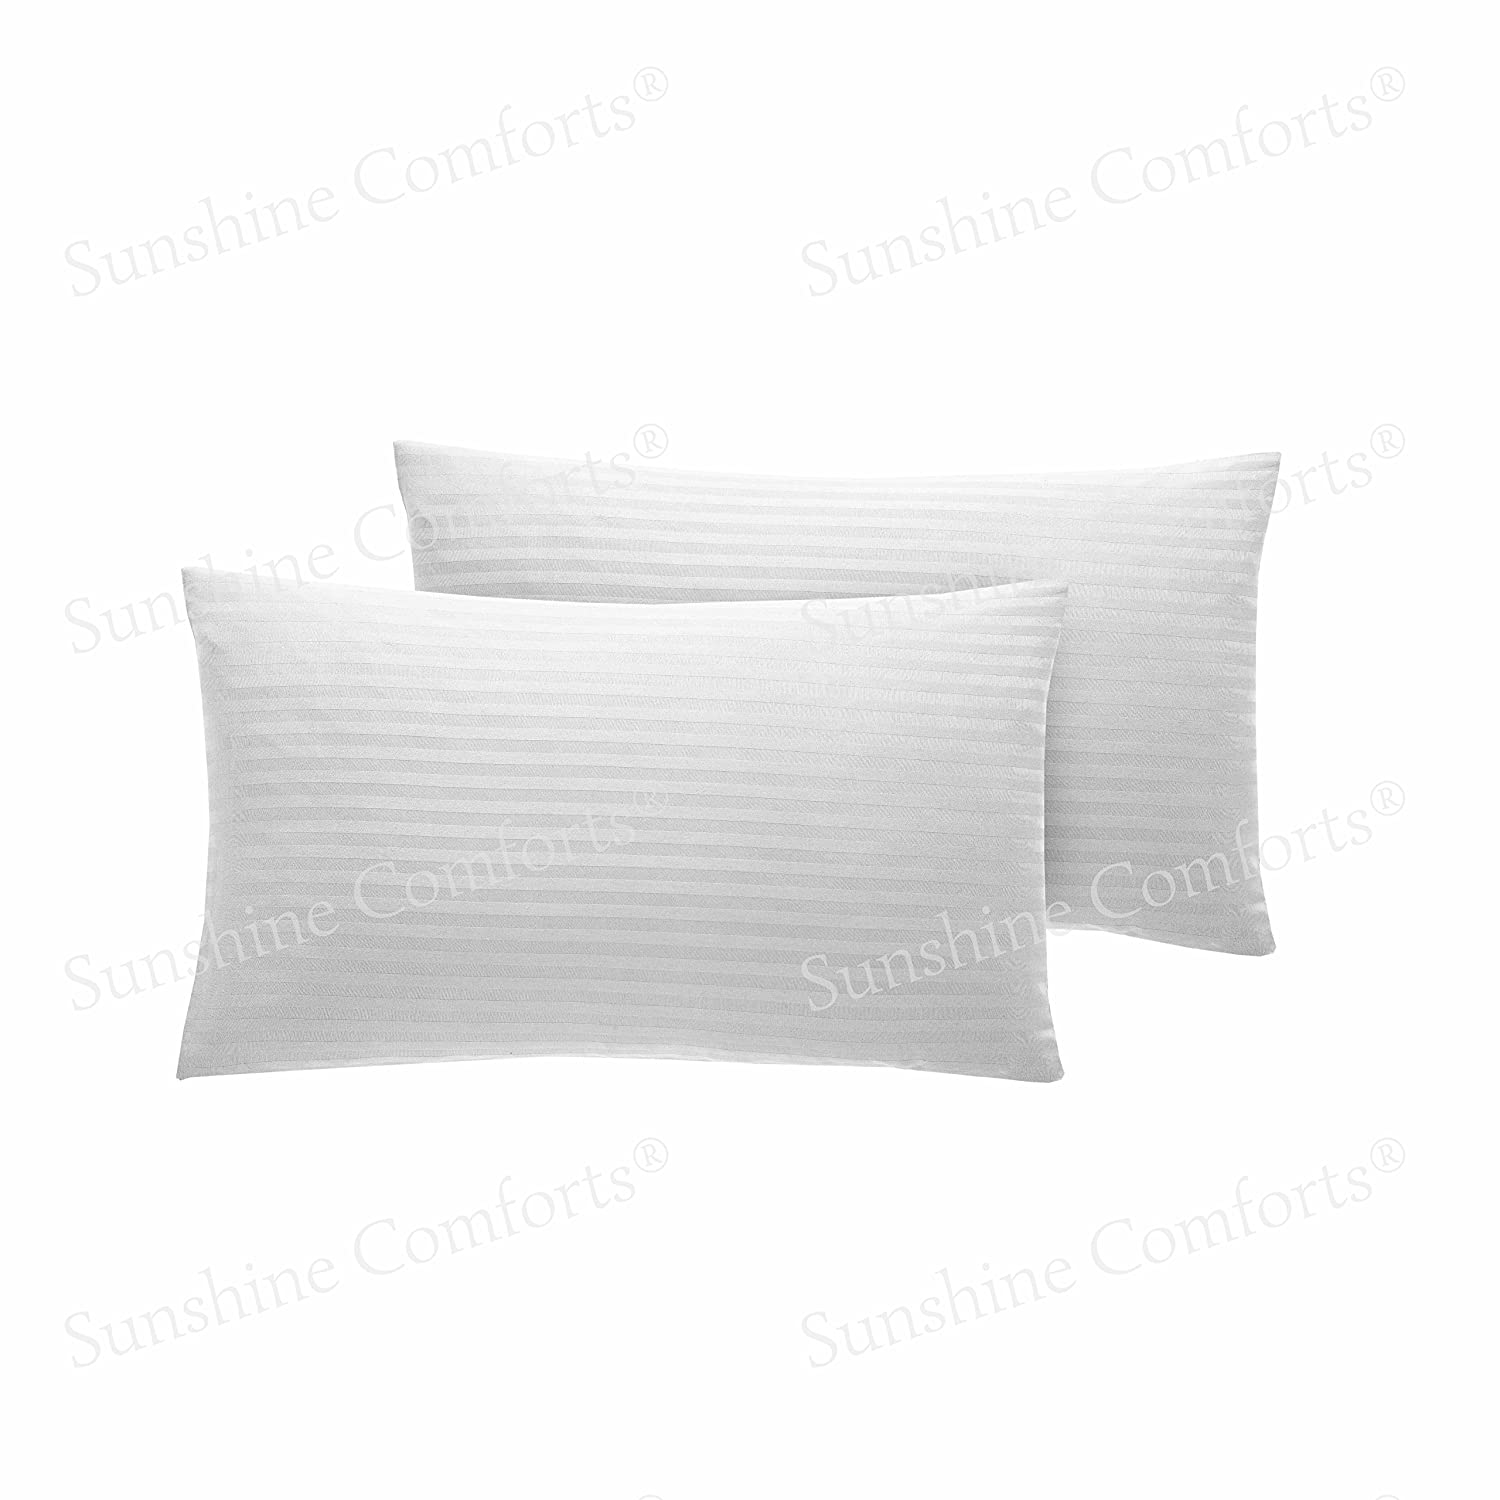 AmigoZone 100/% Egyption Cotton 200 Thread Count Cot Bed Fitted Sheet , White 40 x 60cm Cot Pillow Pair